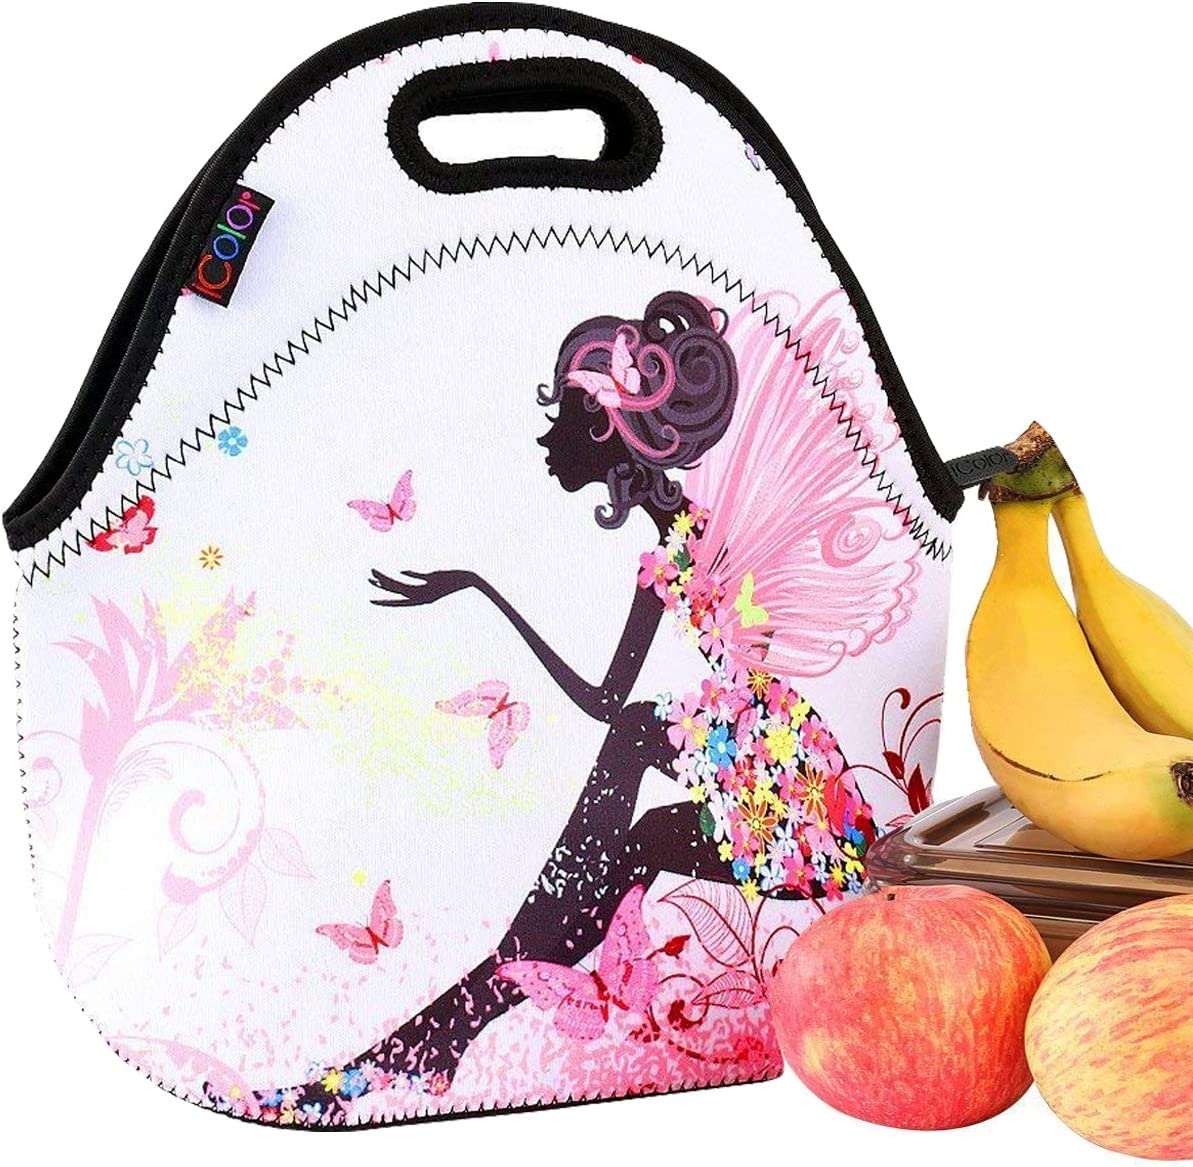 iColor Girls Fashionable Kids Neoprene Sleeve Insulated Portable Waterproof Comfortable Tote Soft cover baby Handbag Lunch Box W/Handle School College Food Carry Case Protector NEW YLB-016